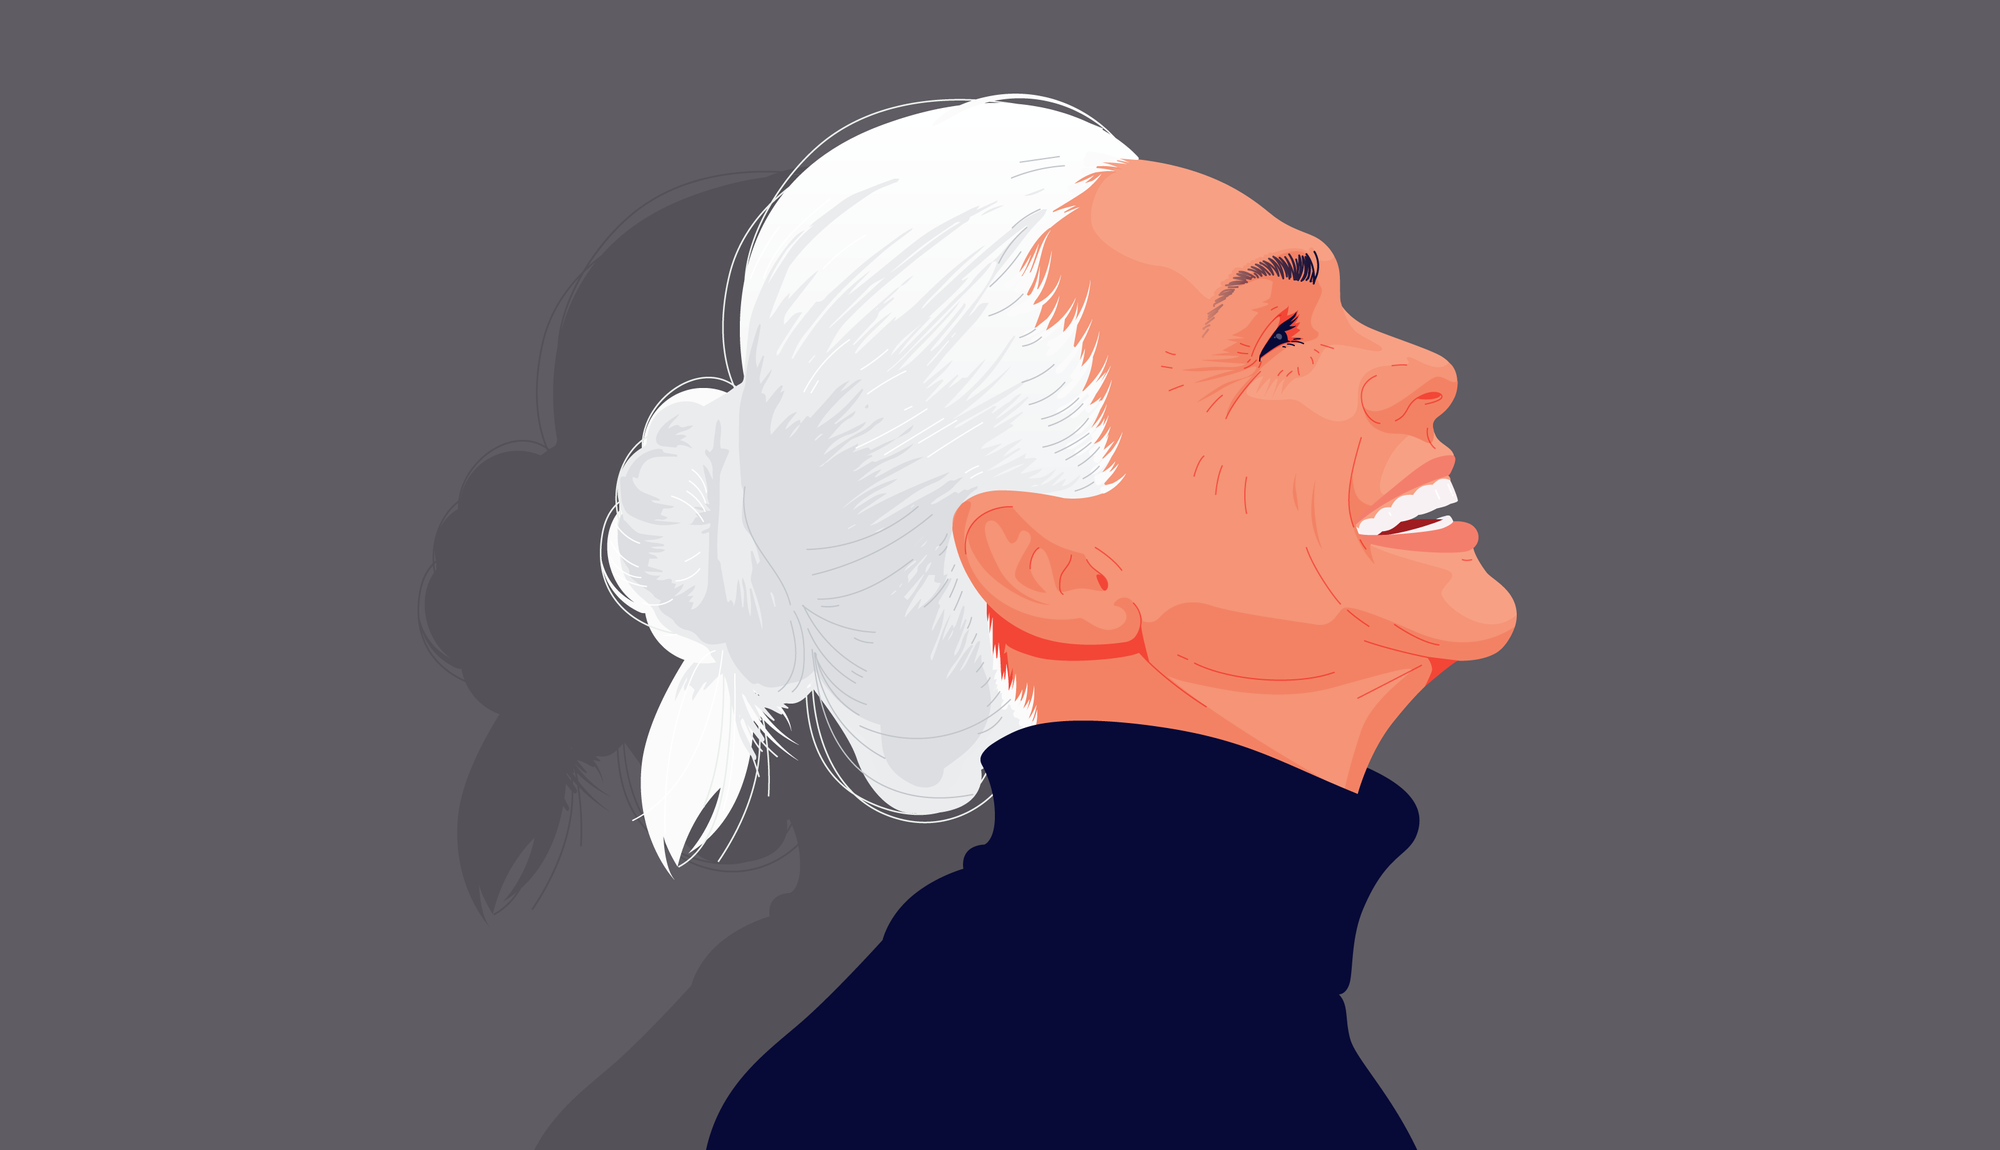 Grey Hair: Why Some People Get Grey Hair Before Others